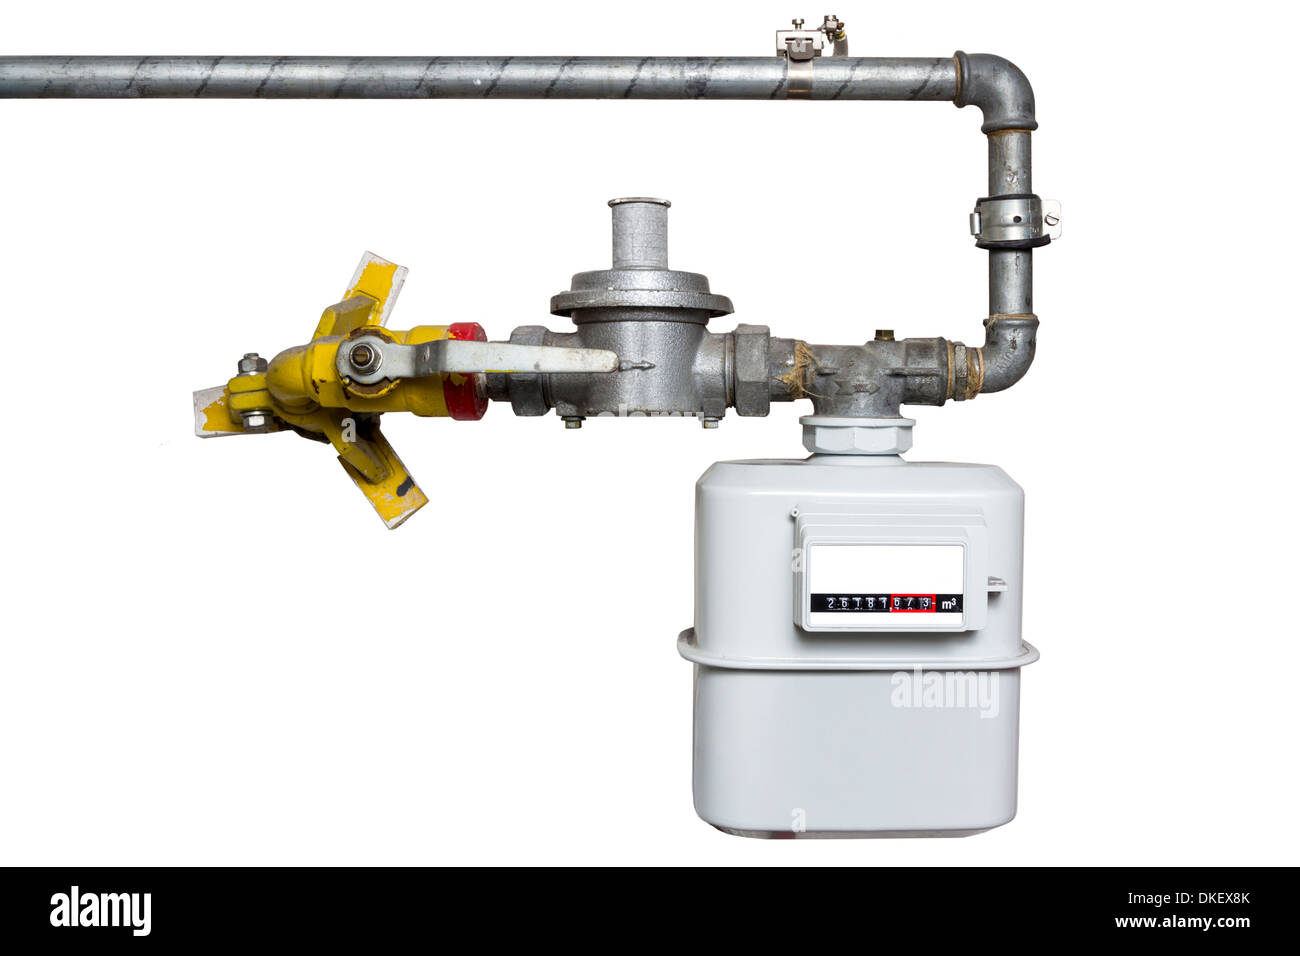 Installed Gas Meter with Pipes isolated on white background - Stock Image